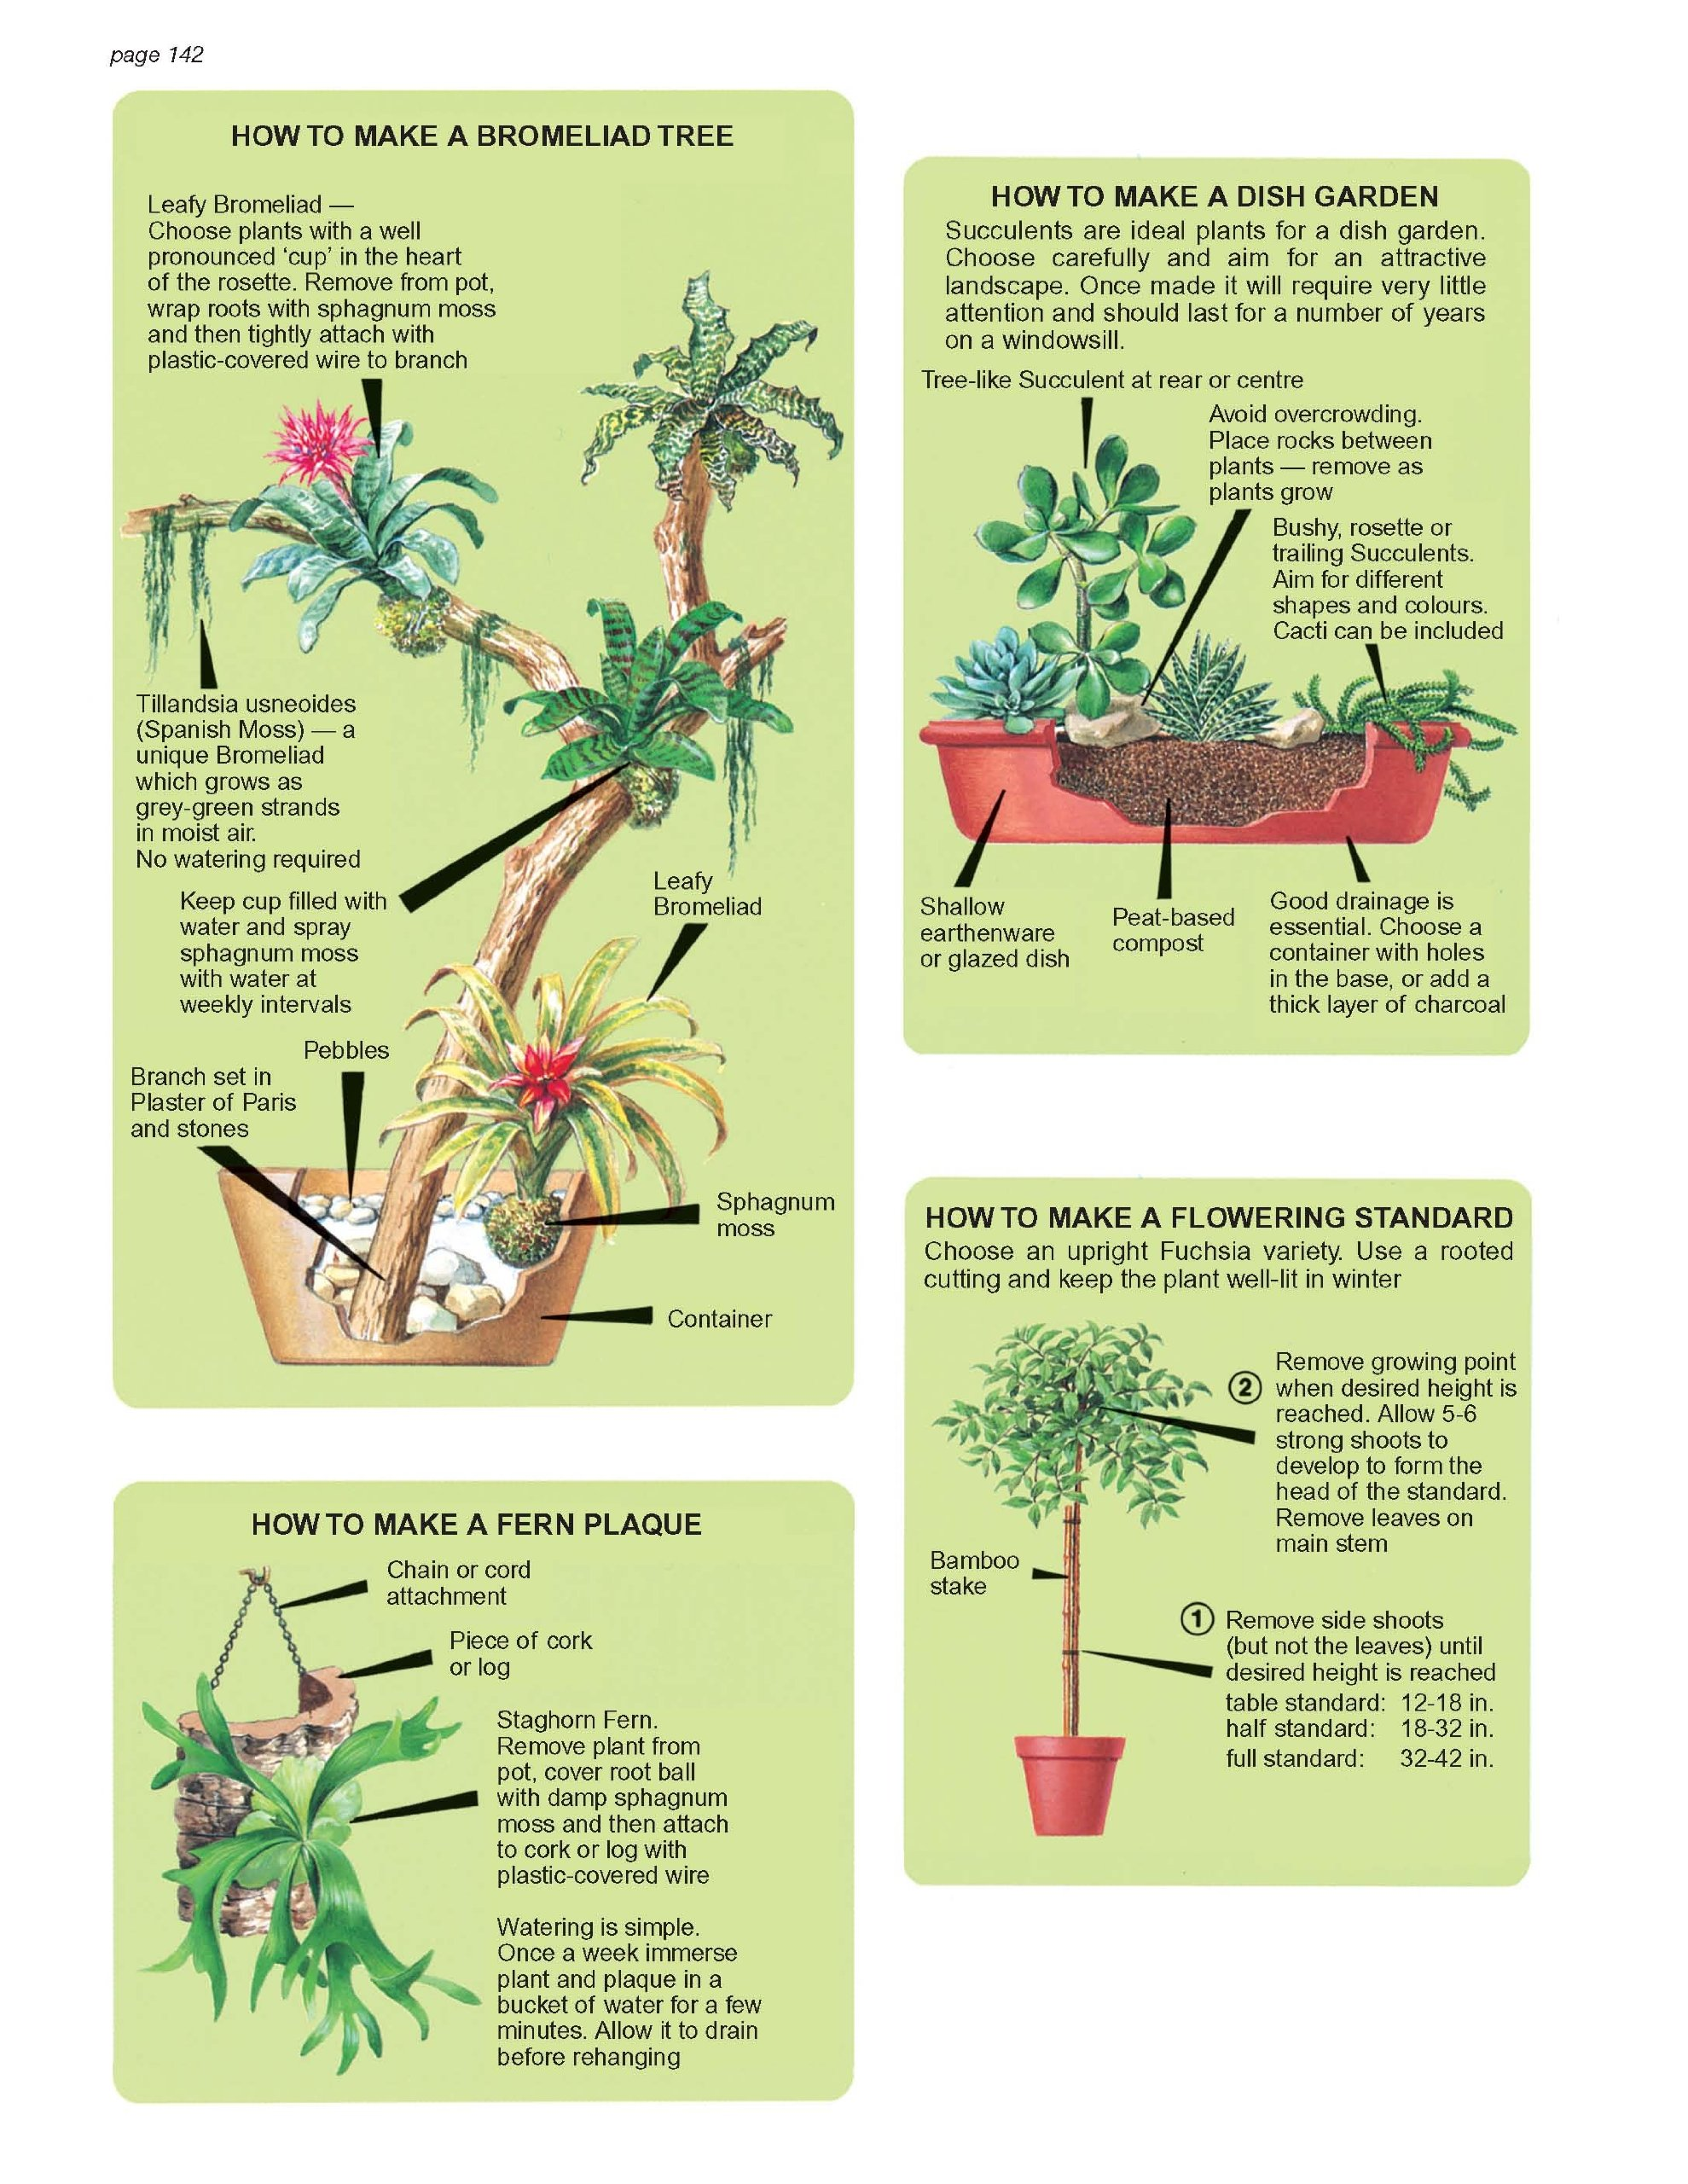 the indoor plant and flower expert d g hessayon 9781909663008